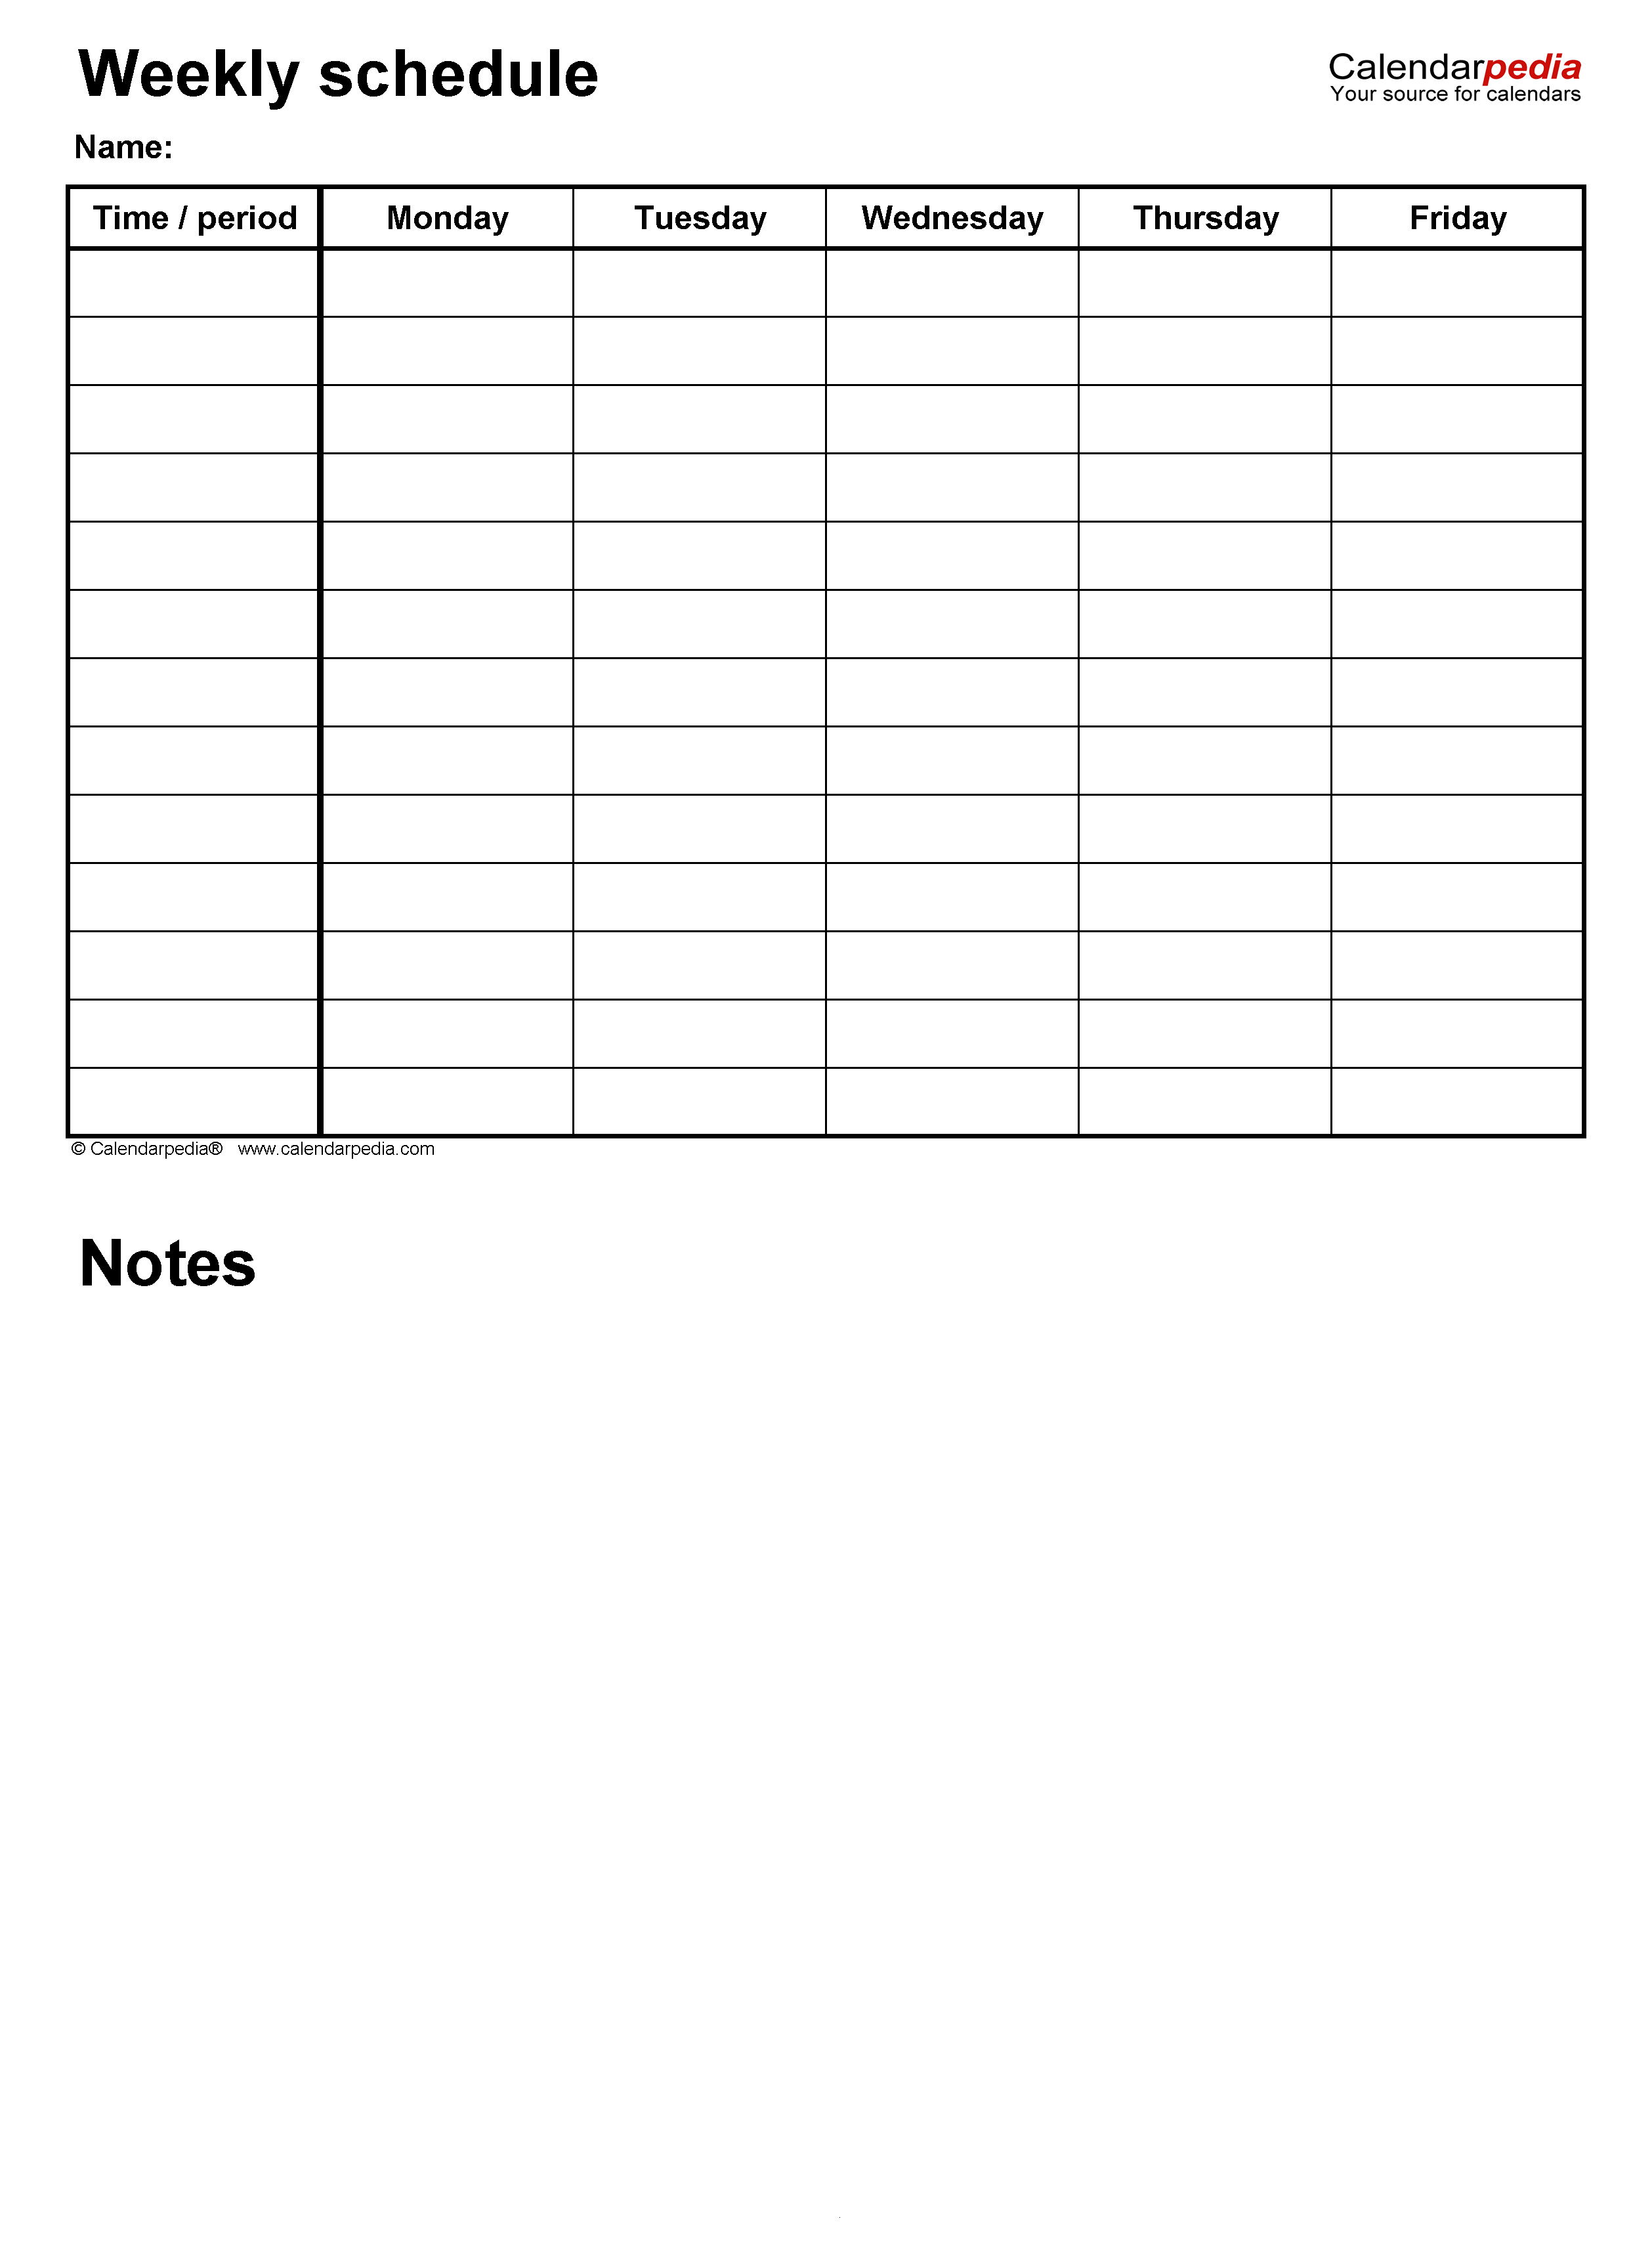 Time Slot Sign Up Sheet Template from www.calendarpedia.com